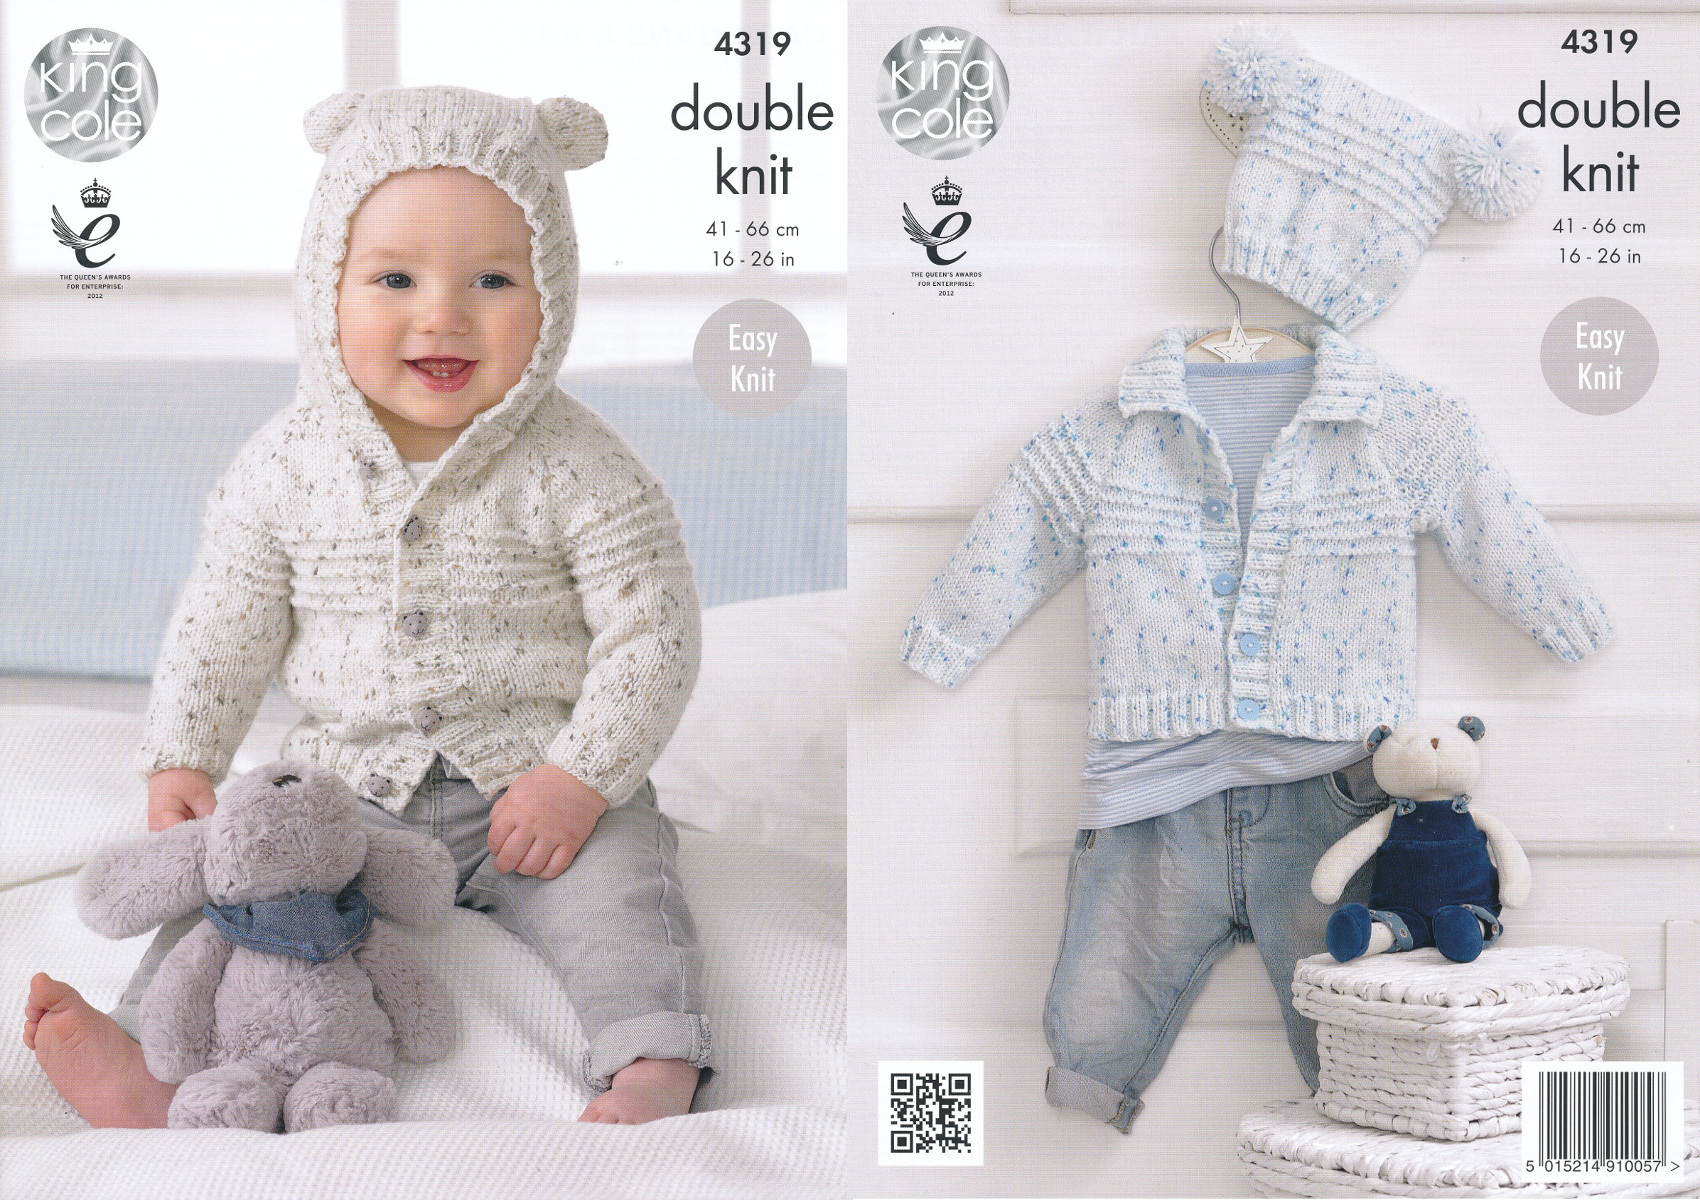 Knitting Pattern King Cole : King Cole Double Knitting Pattern Baby Cardigans Hat Easy ...